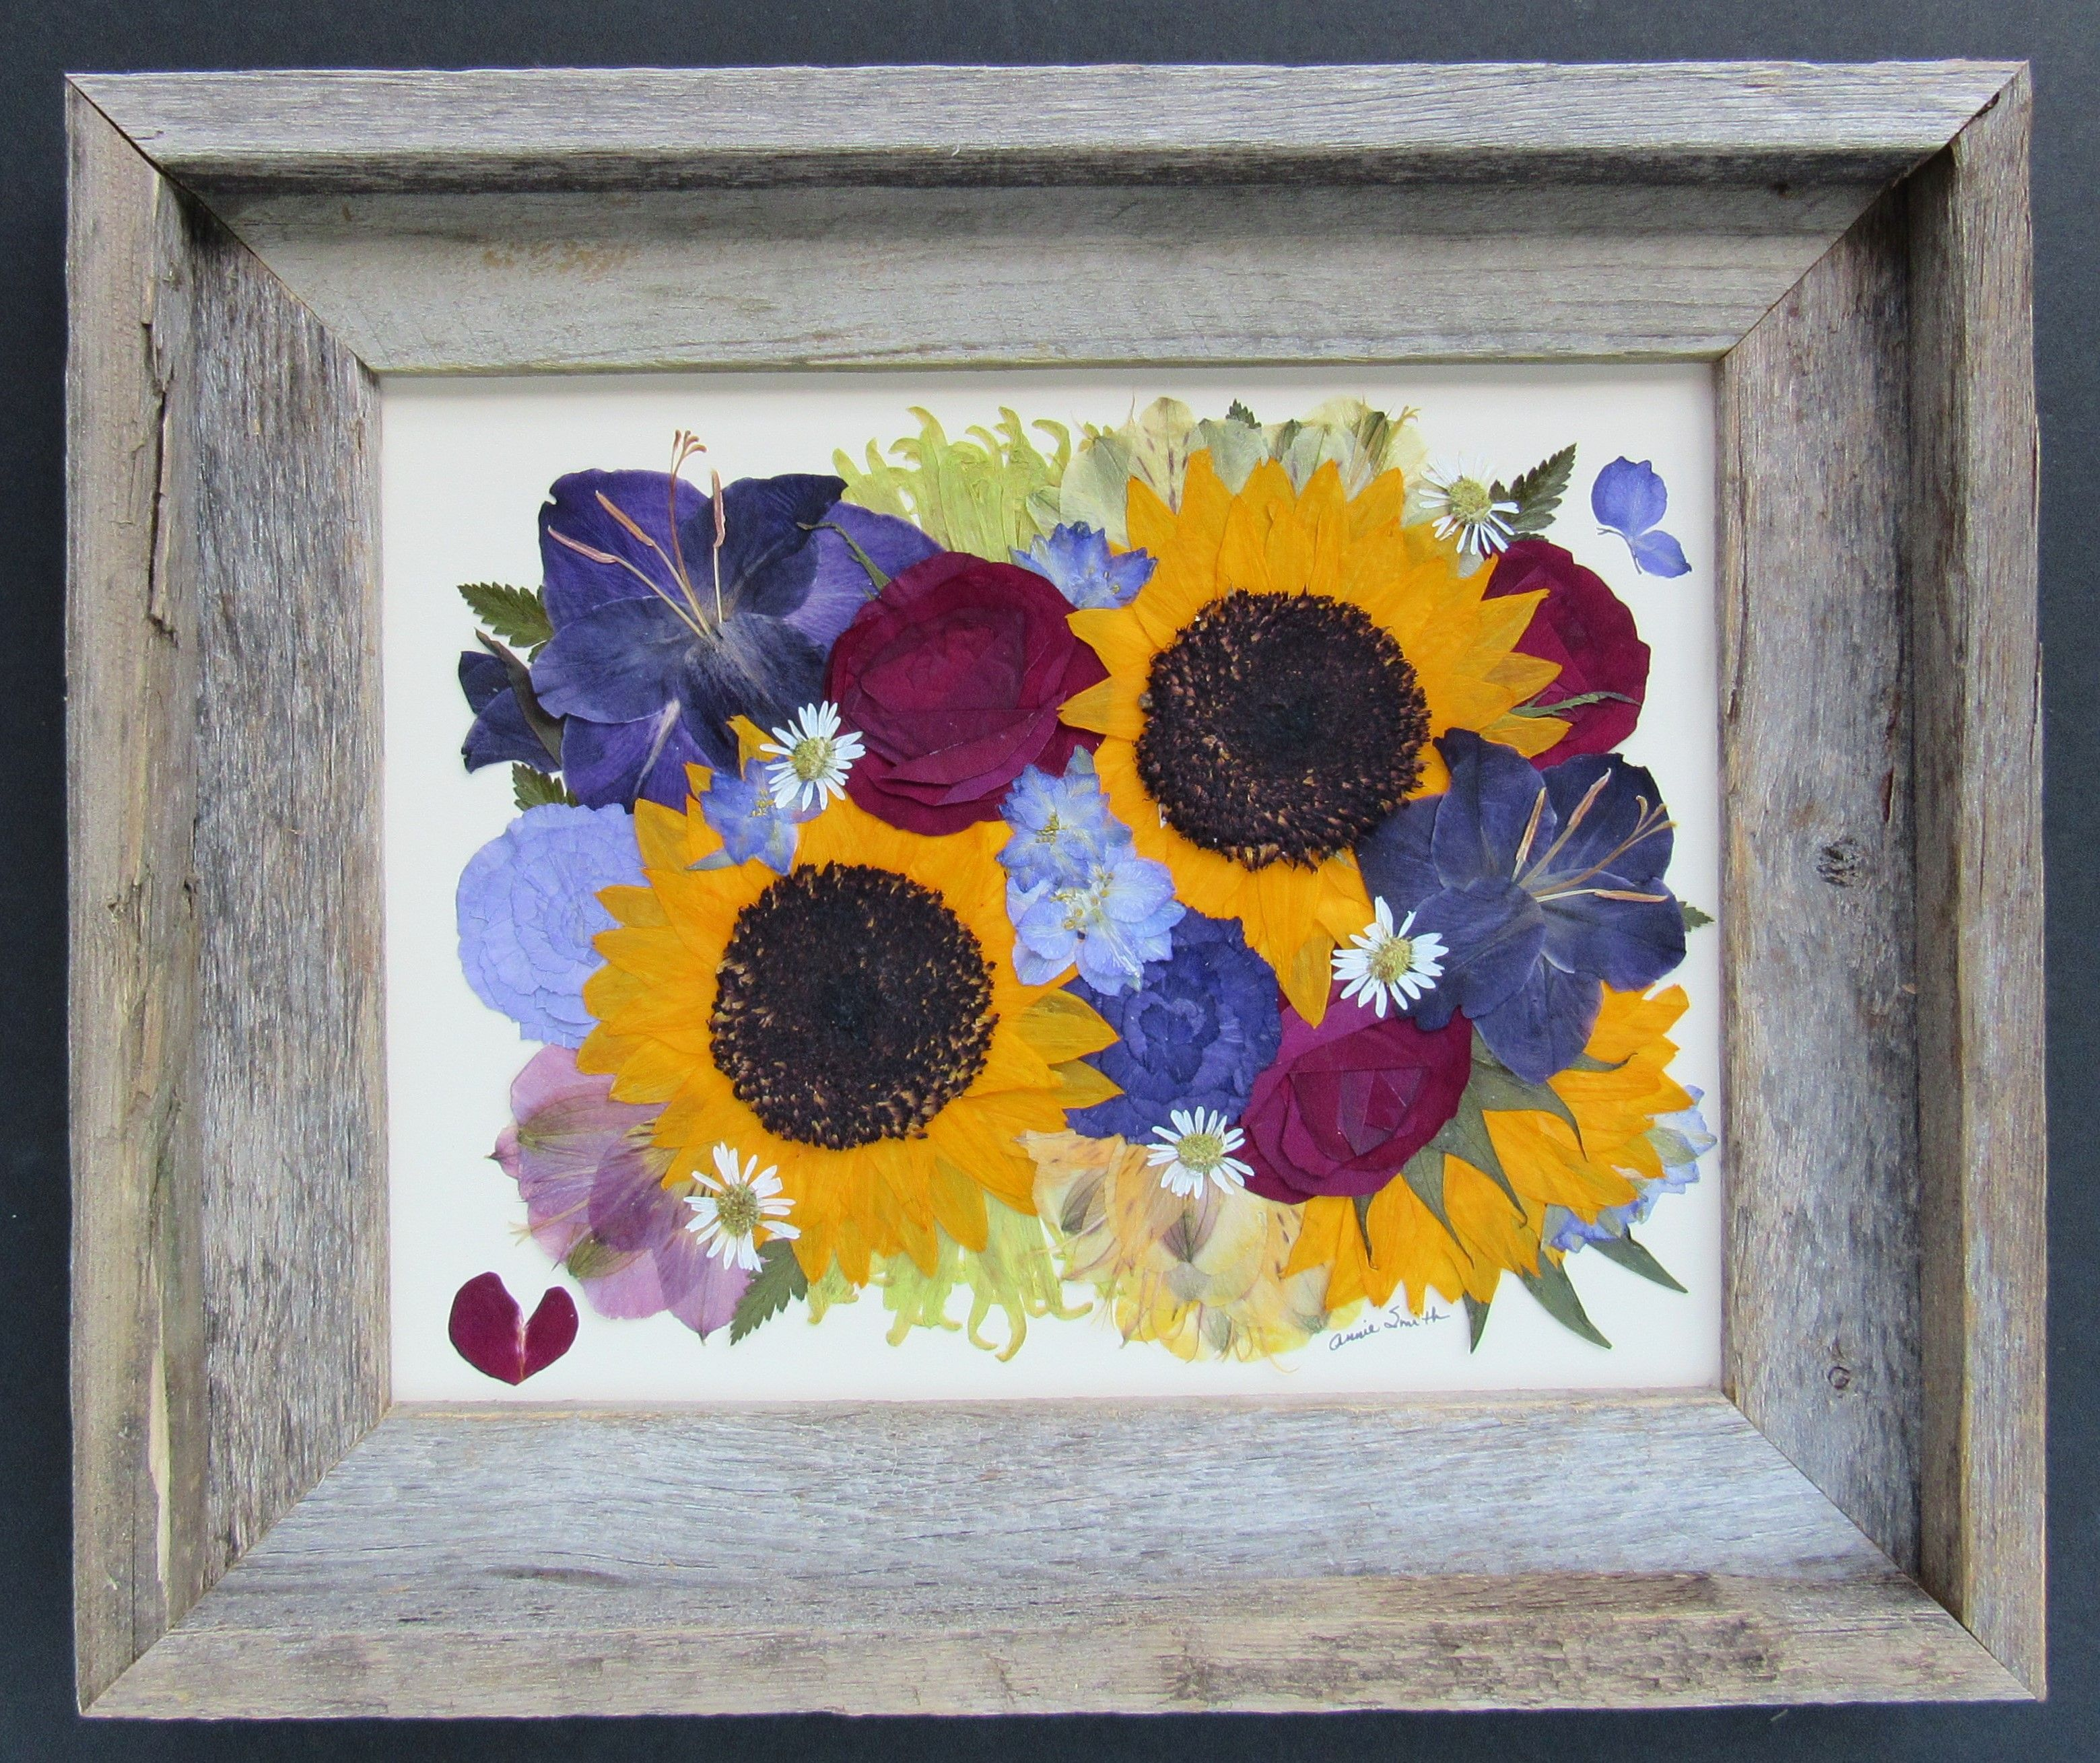 Pressed Wedding Flowers: Pressed Flower Art Made From Funeral Flowers. Pressed